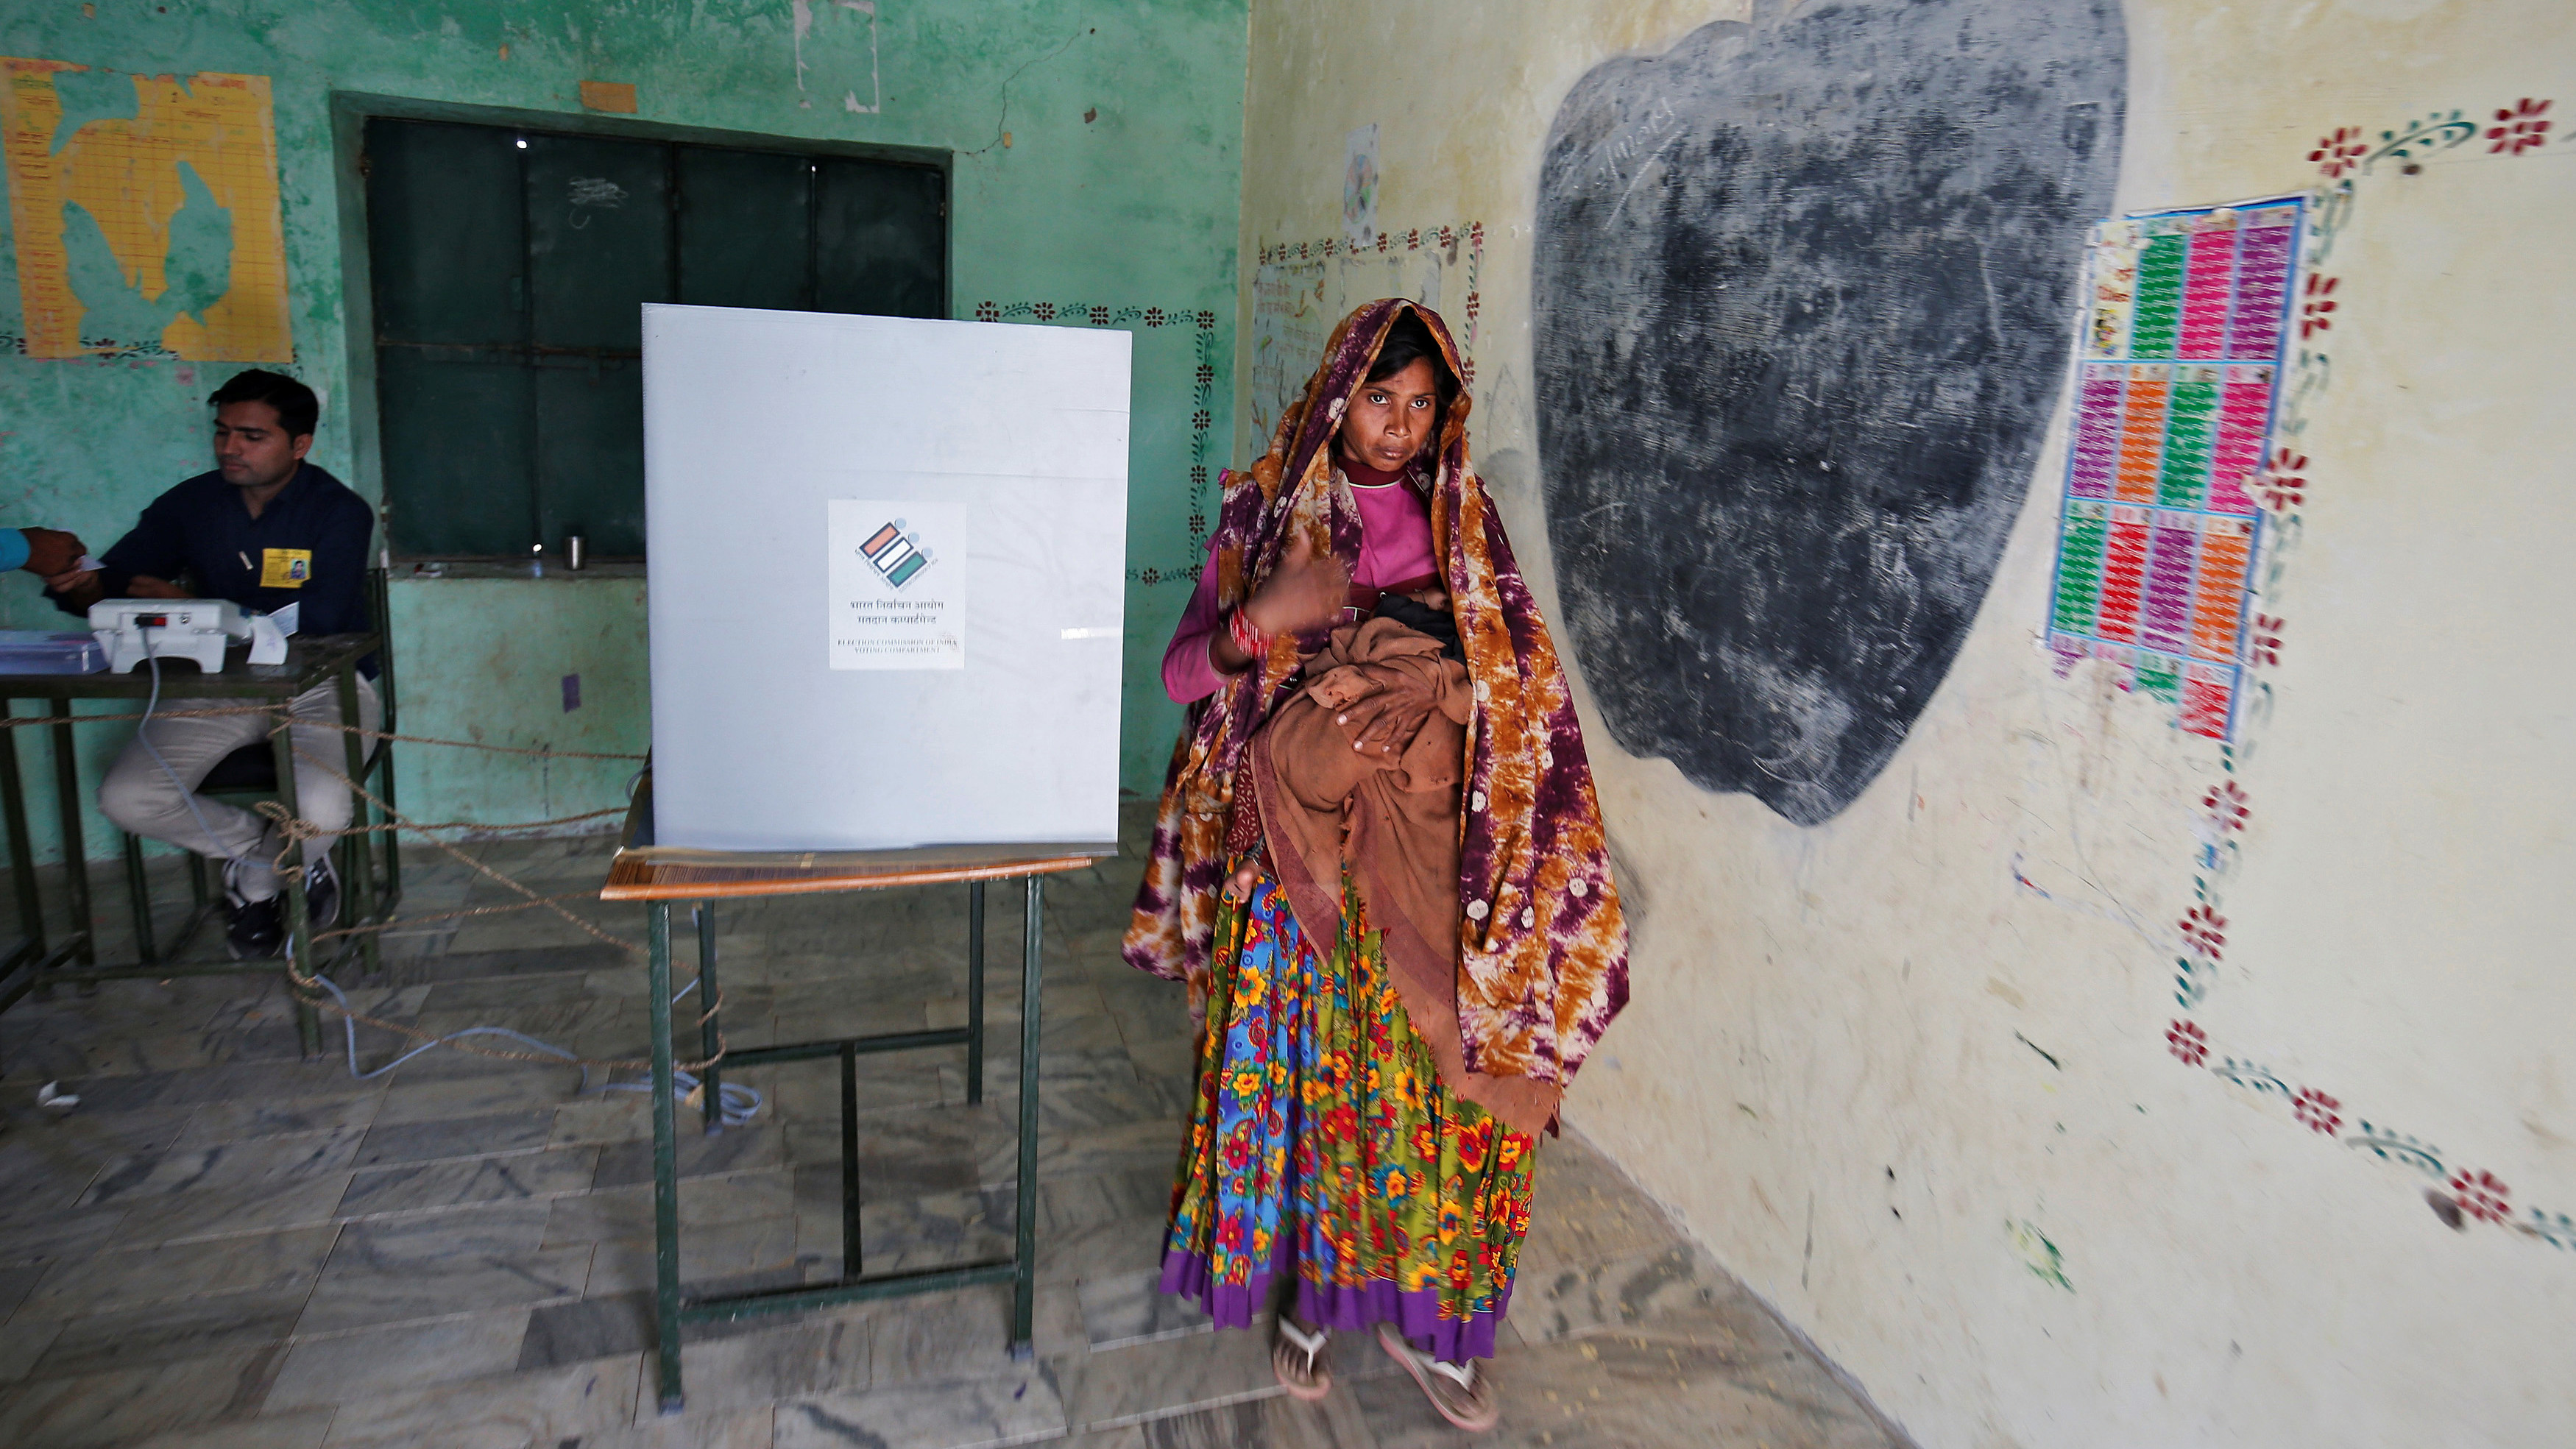 a woman votes in india